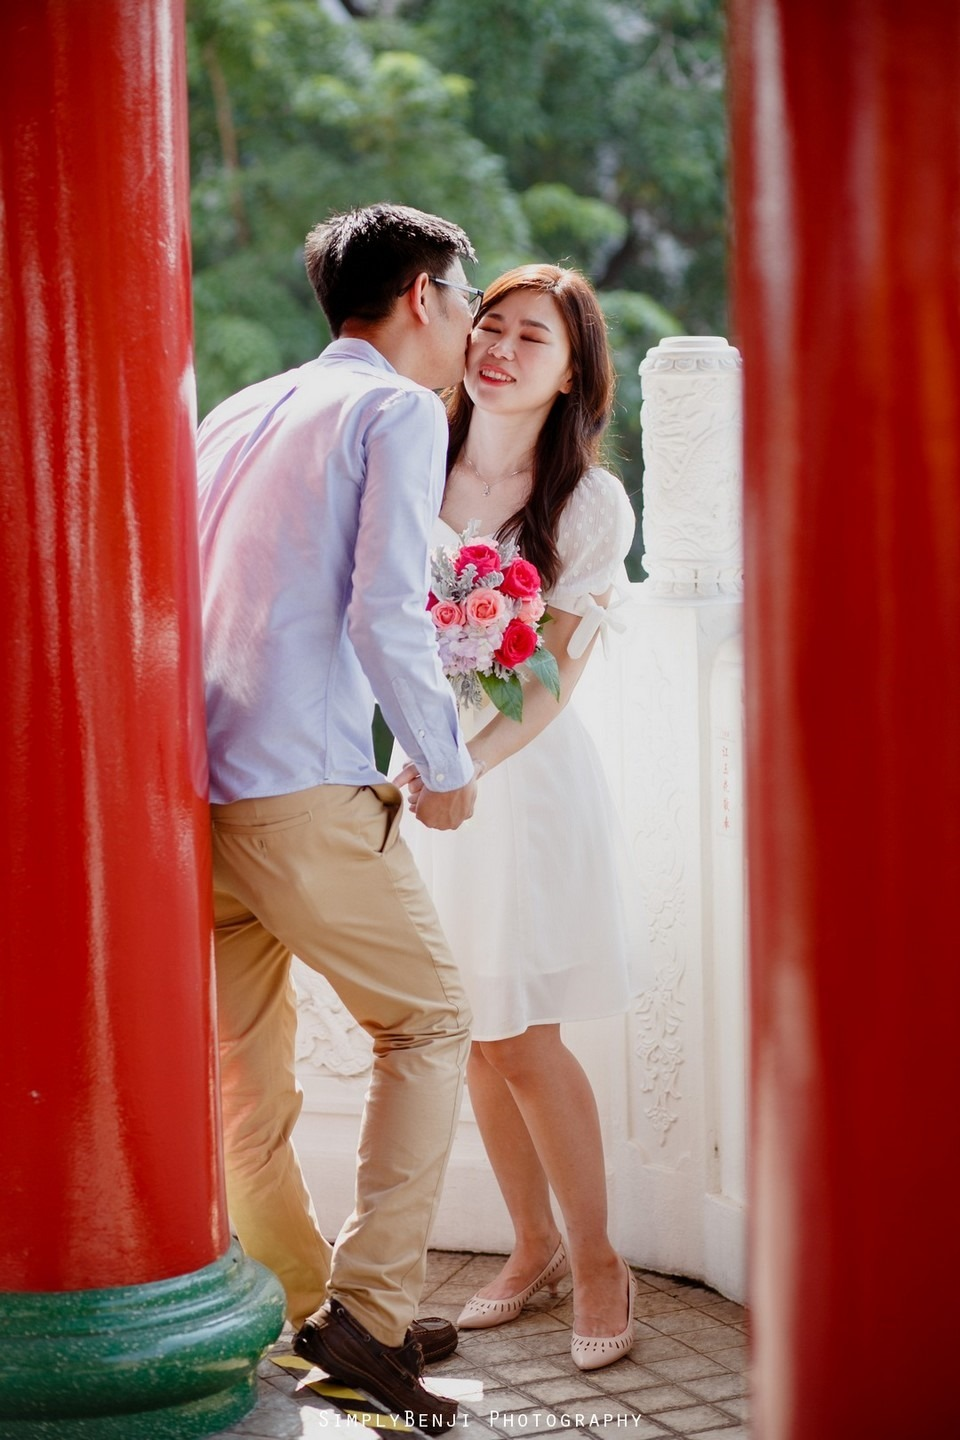 ROM Thean Hou Temple Engagement Portrait _KL Wedding Photographer Malaysia_005